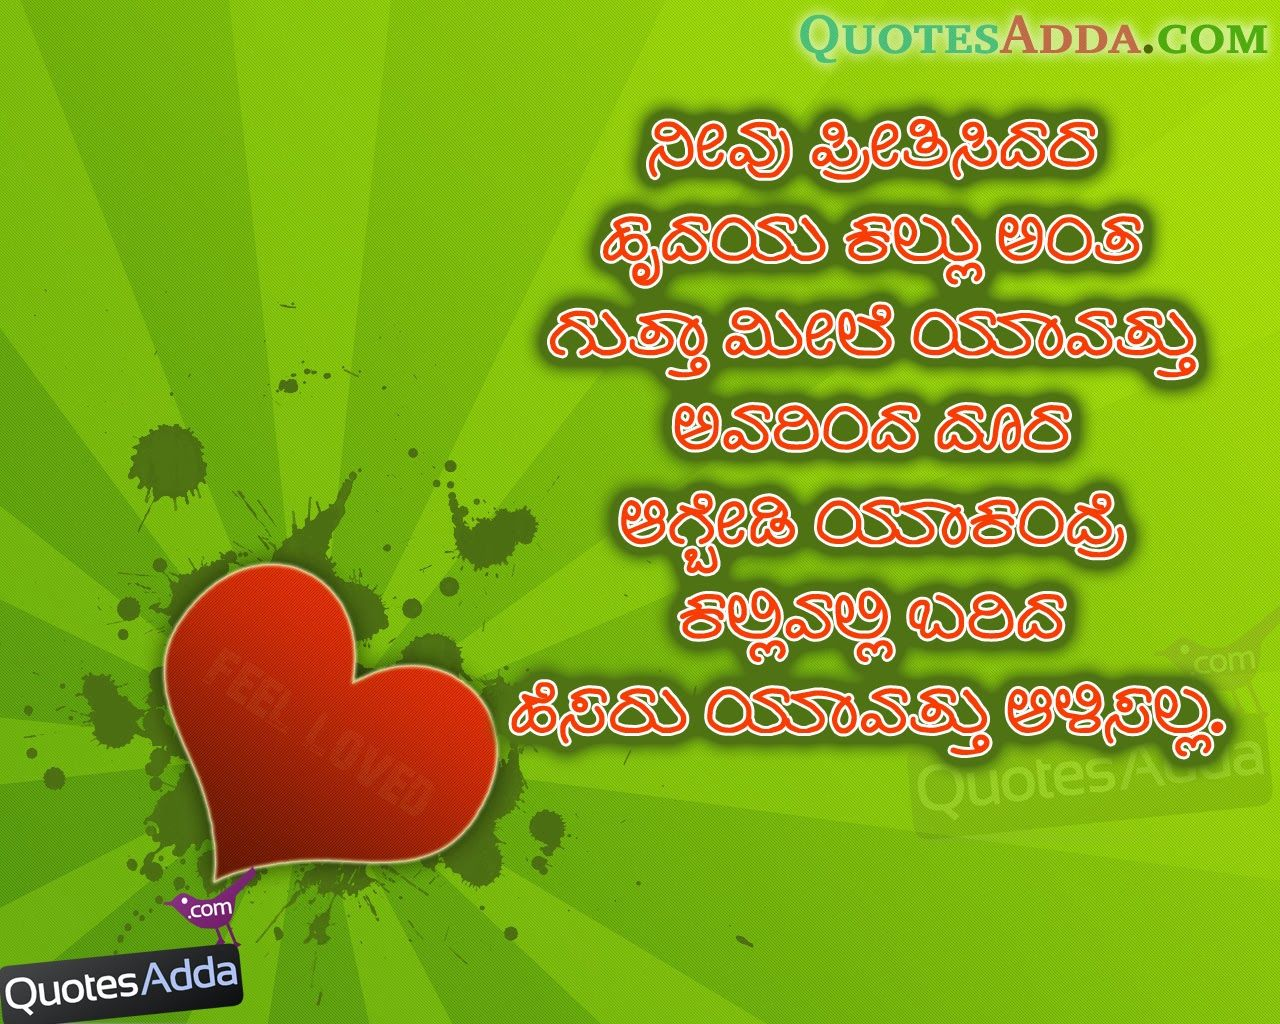 Kannada Love Failure Quotes Images Images Wall Papers P Os